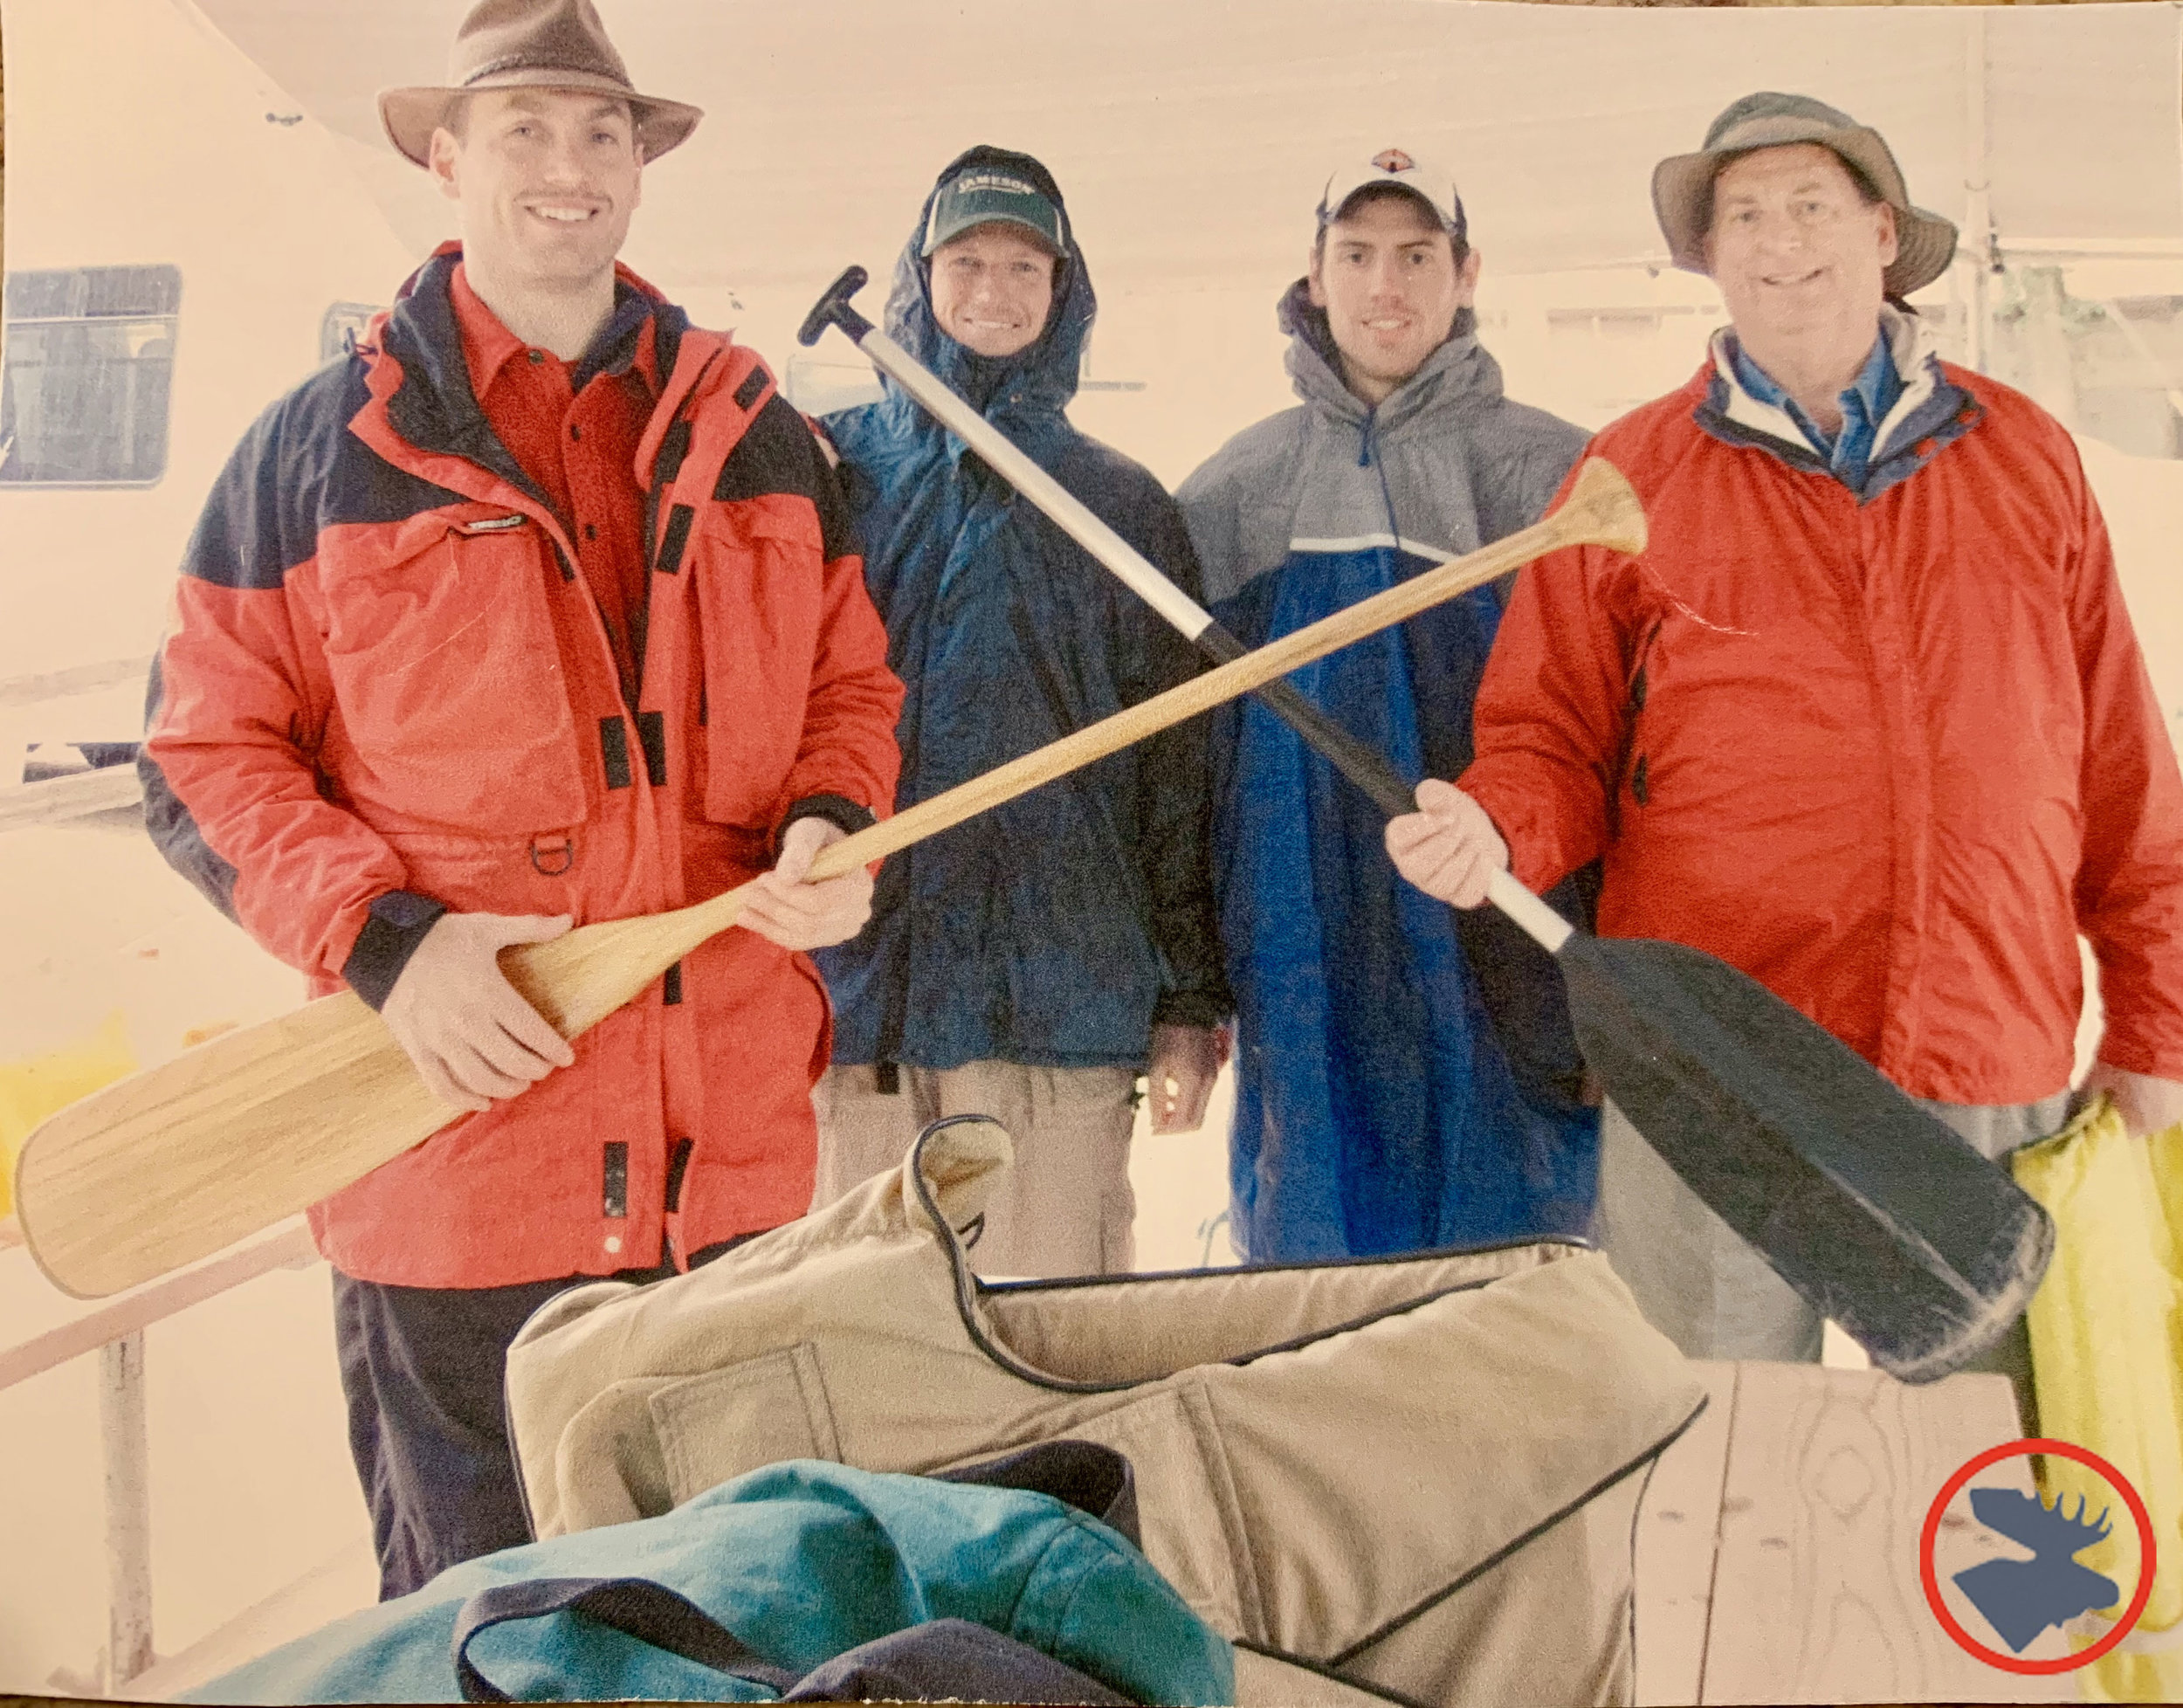 (l-r): Me, Dave, Jeff, and Dad about to launch on a cold and rainy Spring Cannon River cruise in the early 2000s.